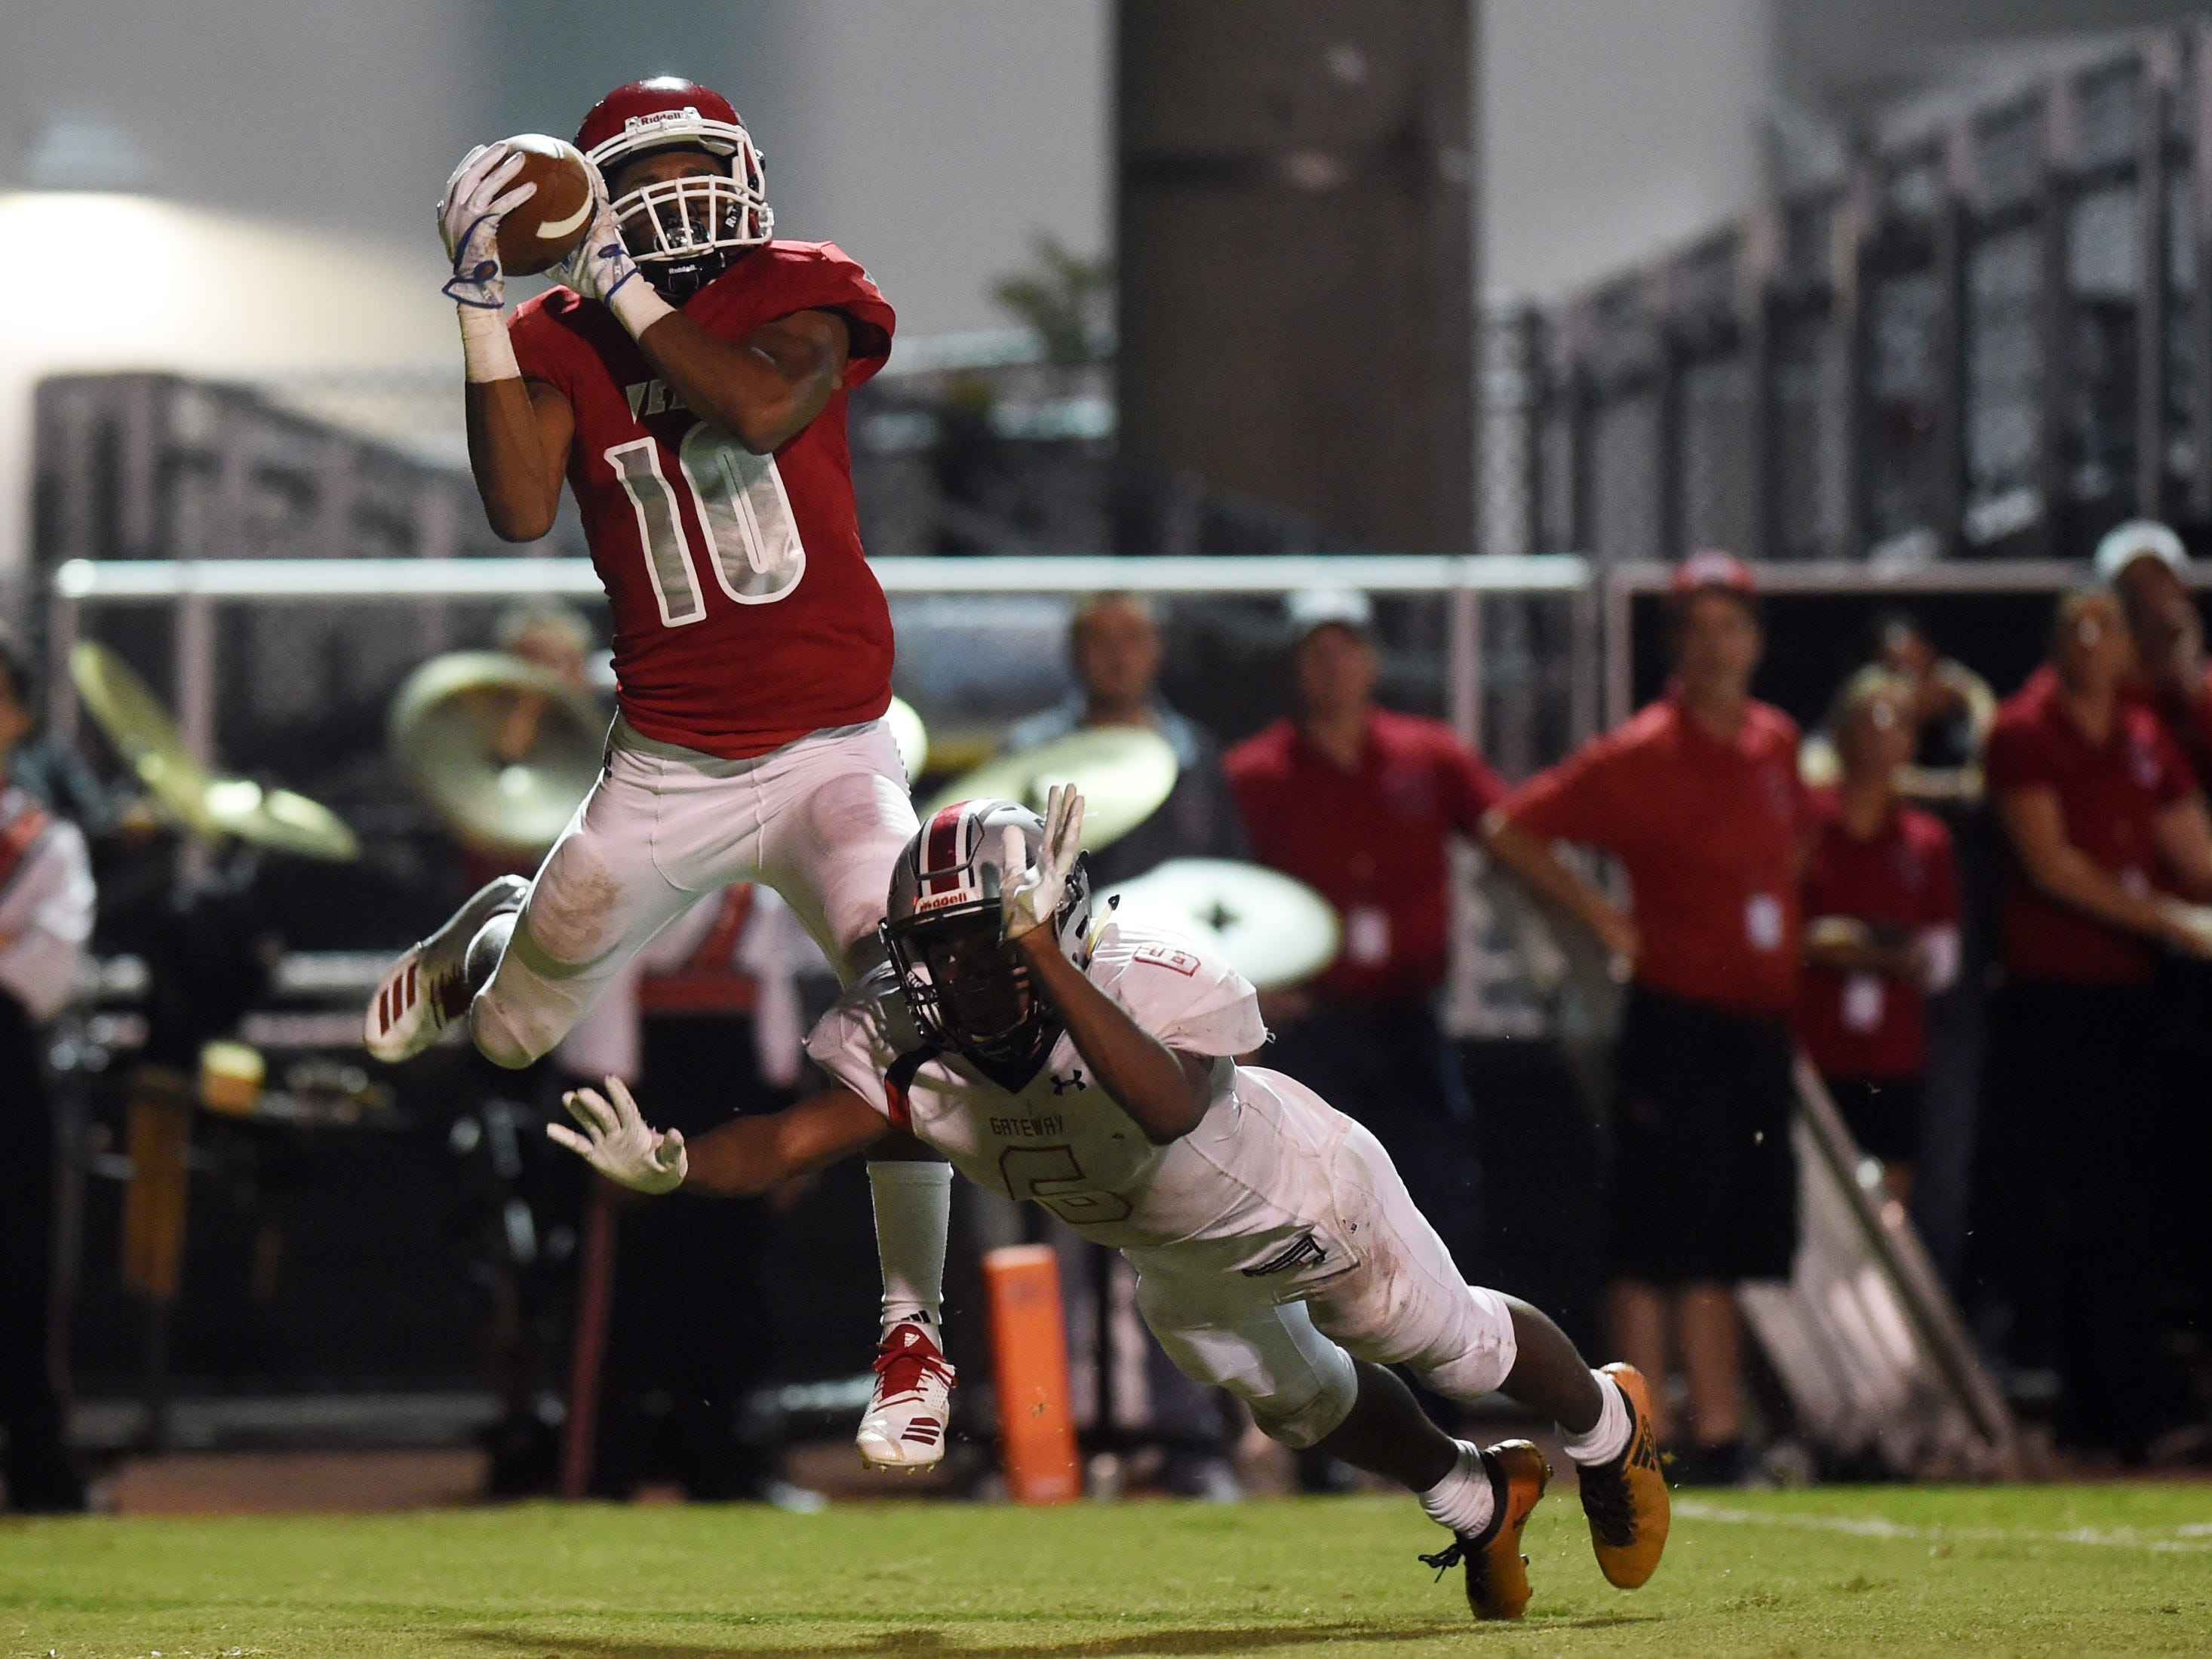 Vero Beach High School's Demarcus Harris hauls in a catch for a touchdown on Friday, Nov. 9, 2018, during a Region 2-8A quarterfinal playoff game against Gateway at the Citrus Bowl in Vero Beach. The fighting Indians won 48-6.